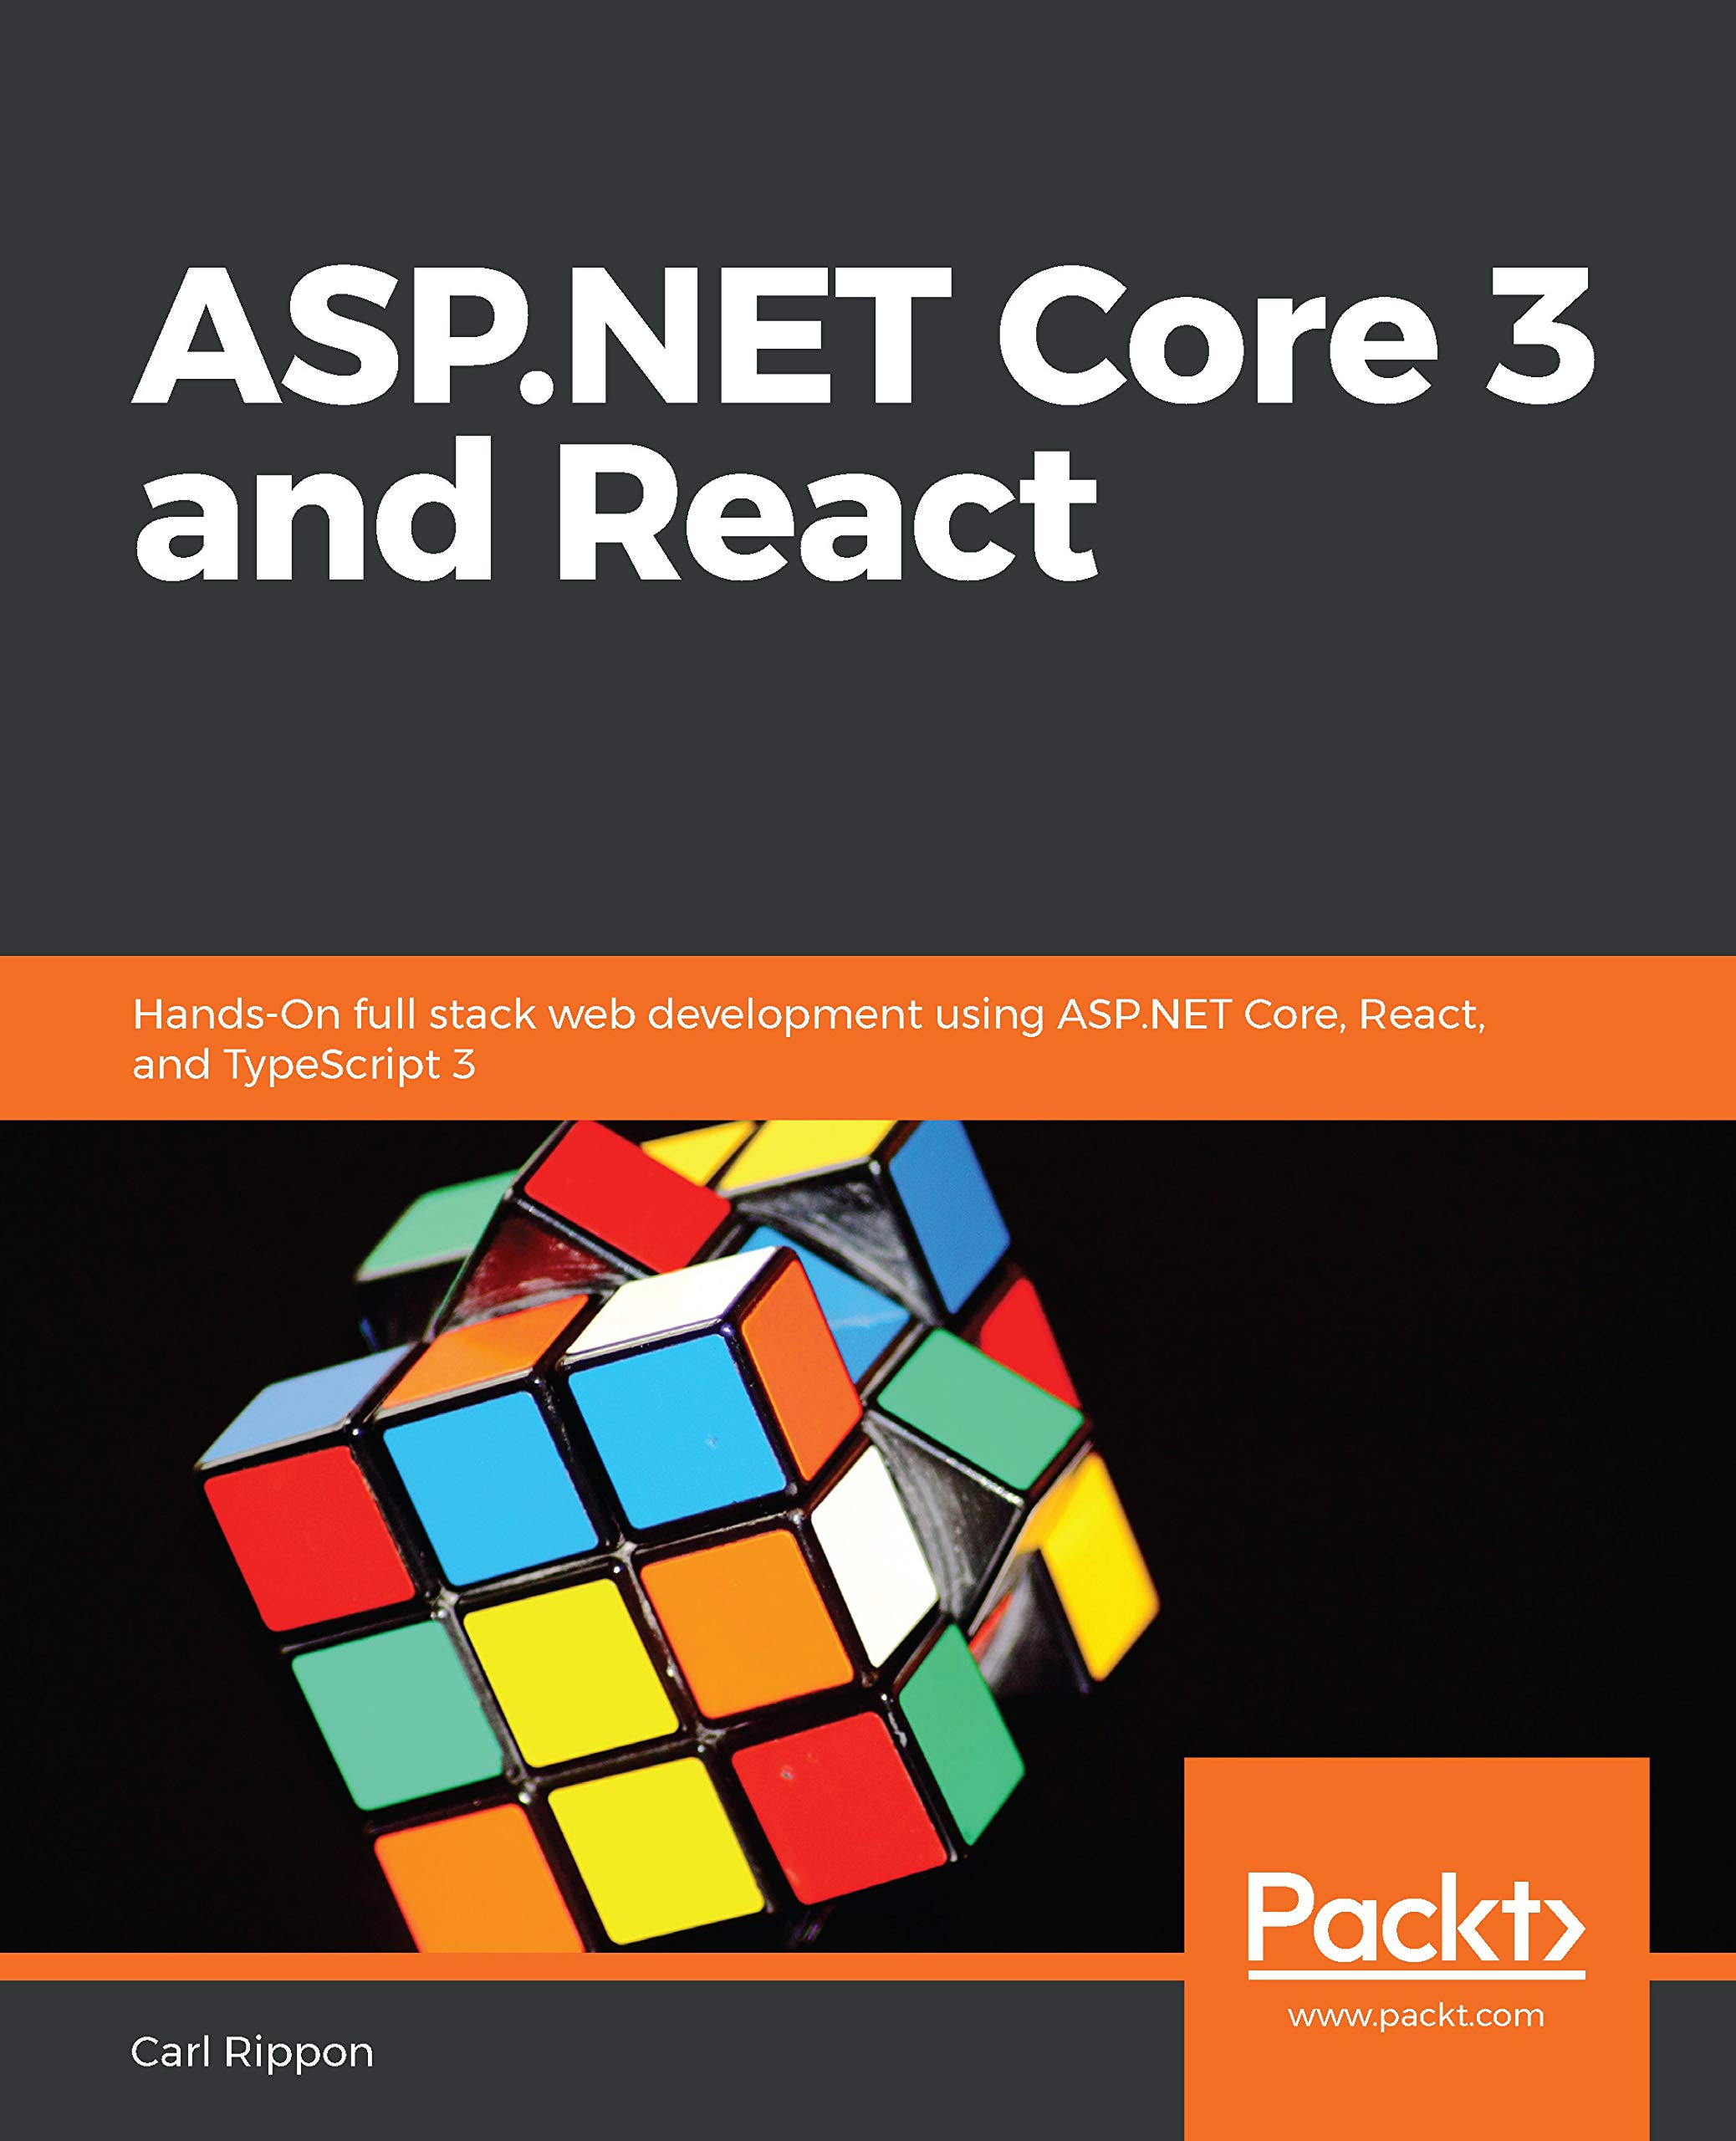 Amazon Com Asp Net Core 3 And React Hands On Full Stack Web Development Using Asp Net Core React And Typescript 3 Ebook Rippon Carl Kindle Store